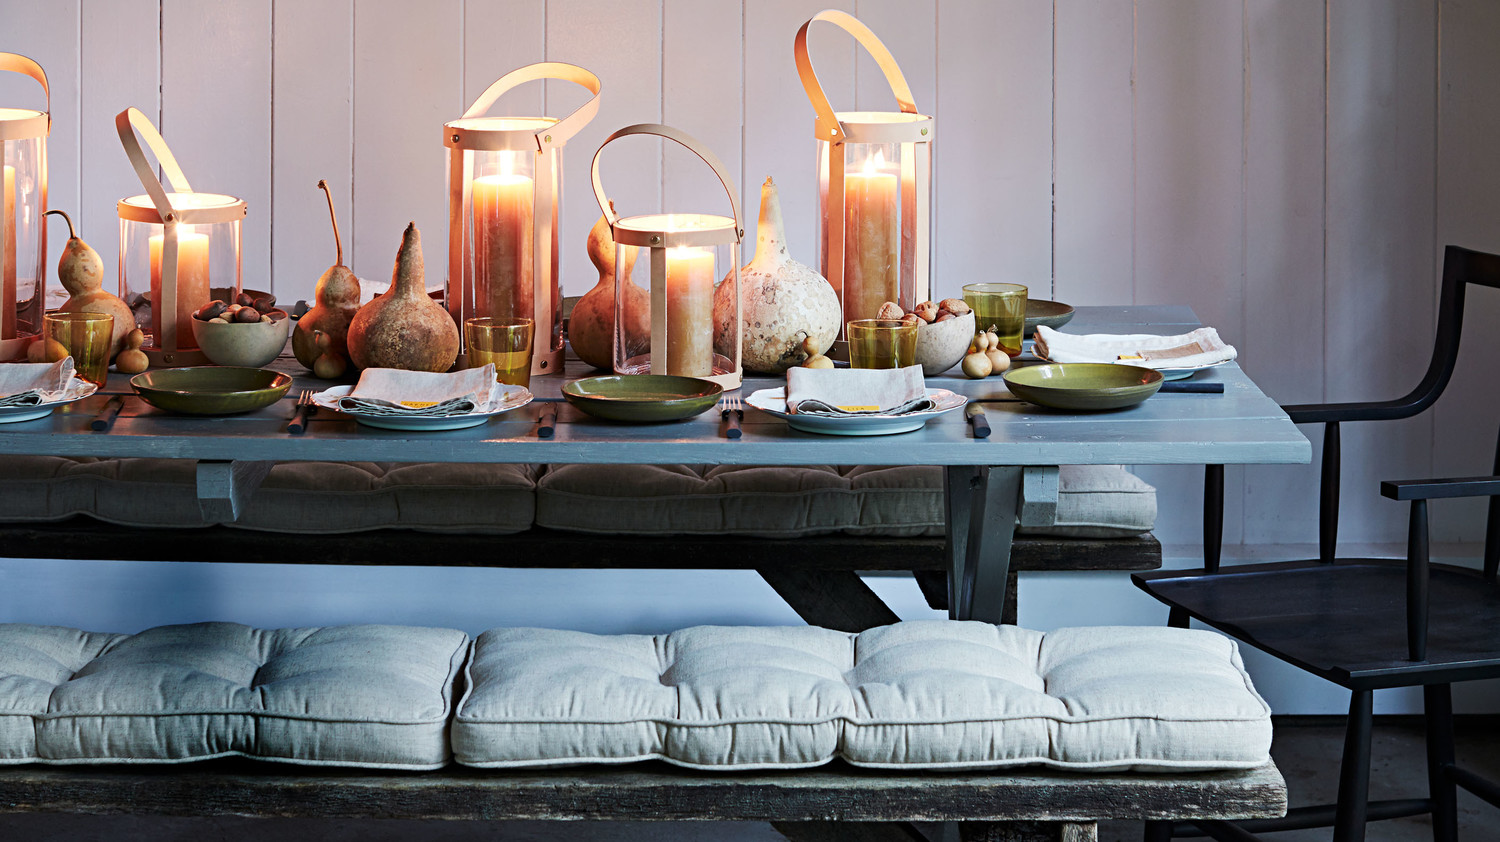 5 Thanksgiving Table Ideas To Make Your Guests Feel Comfy